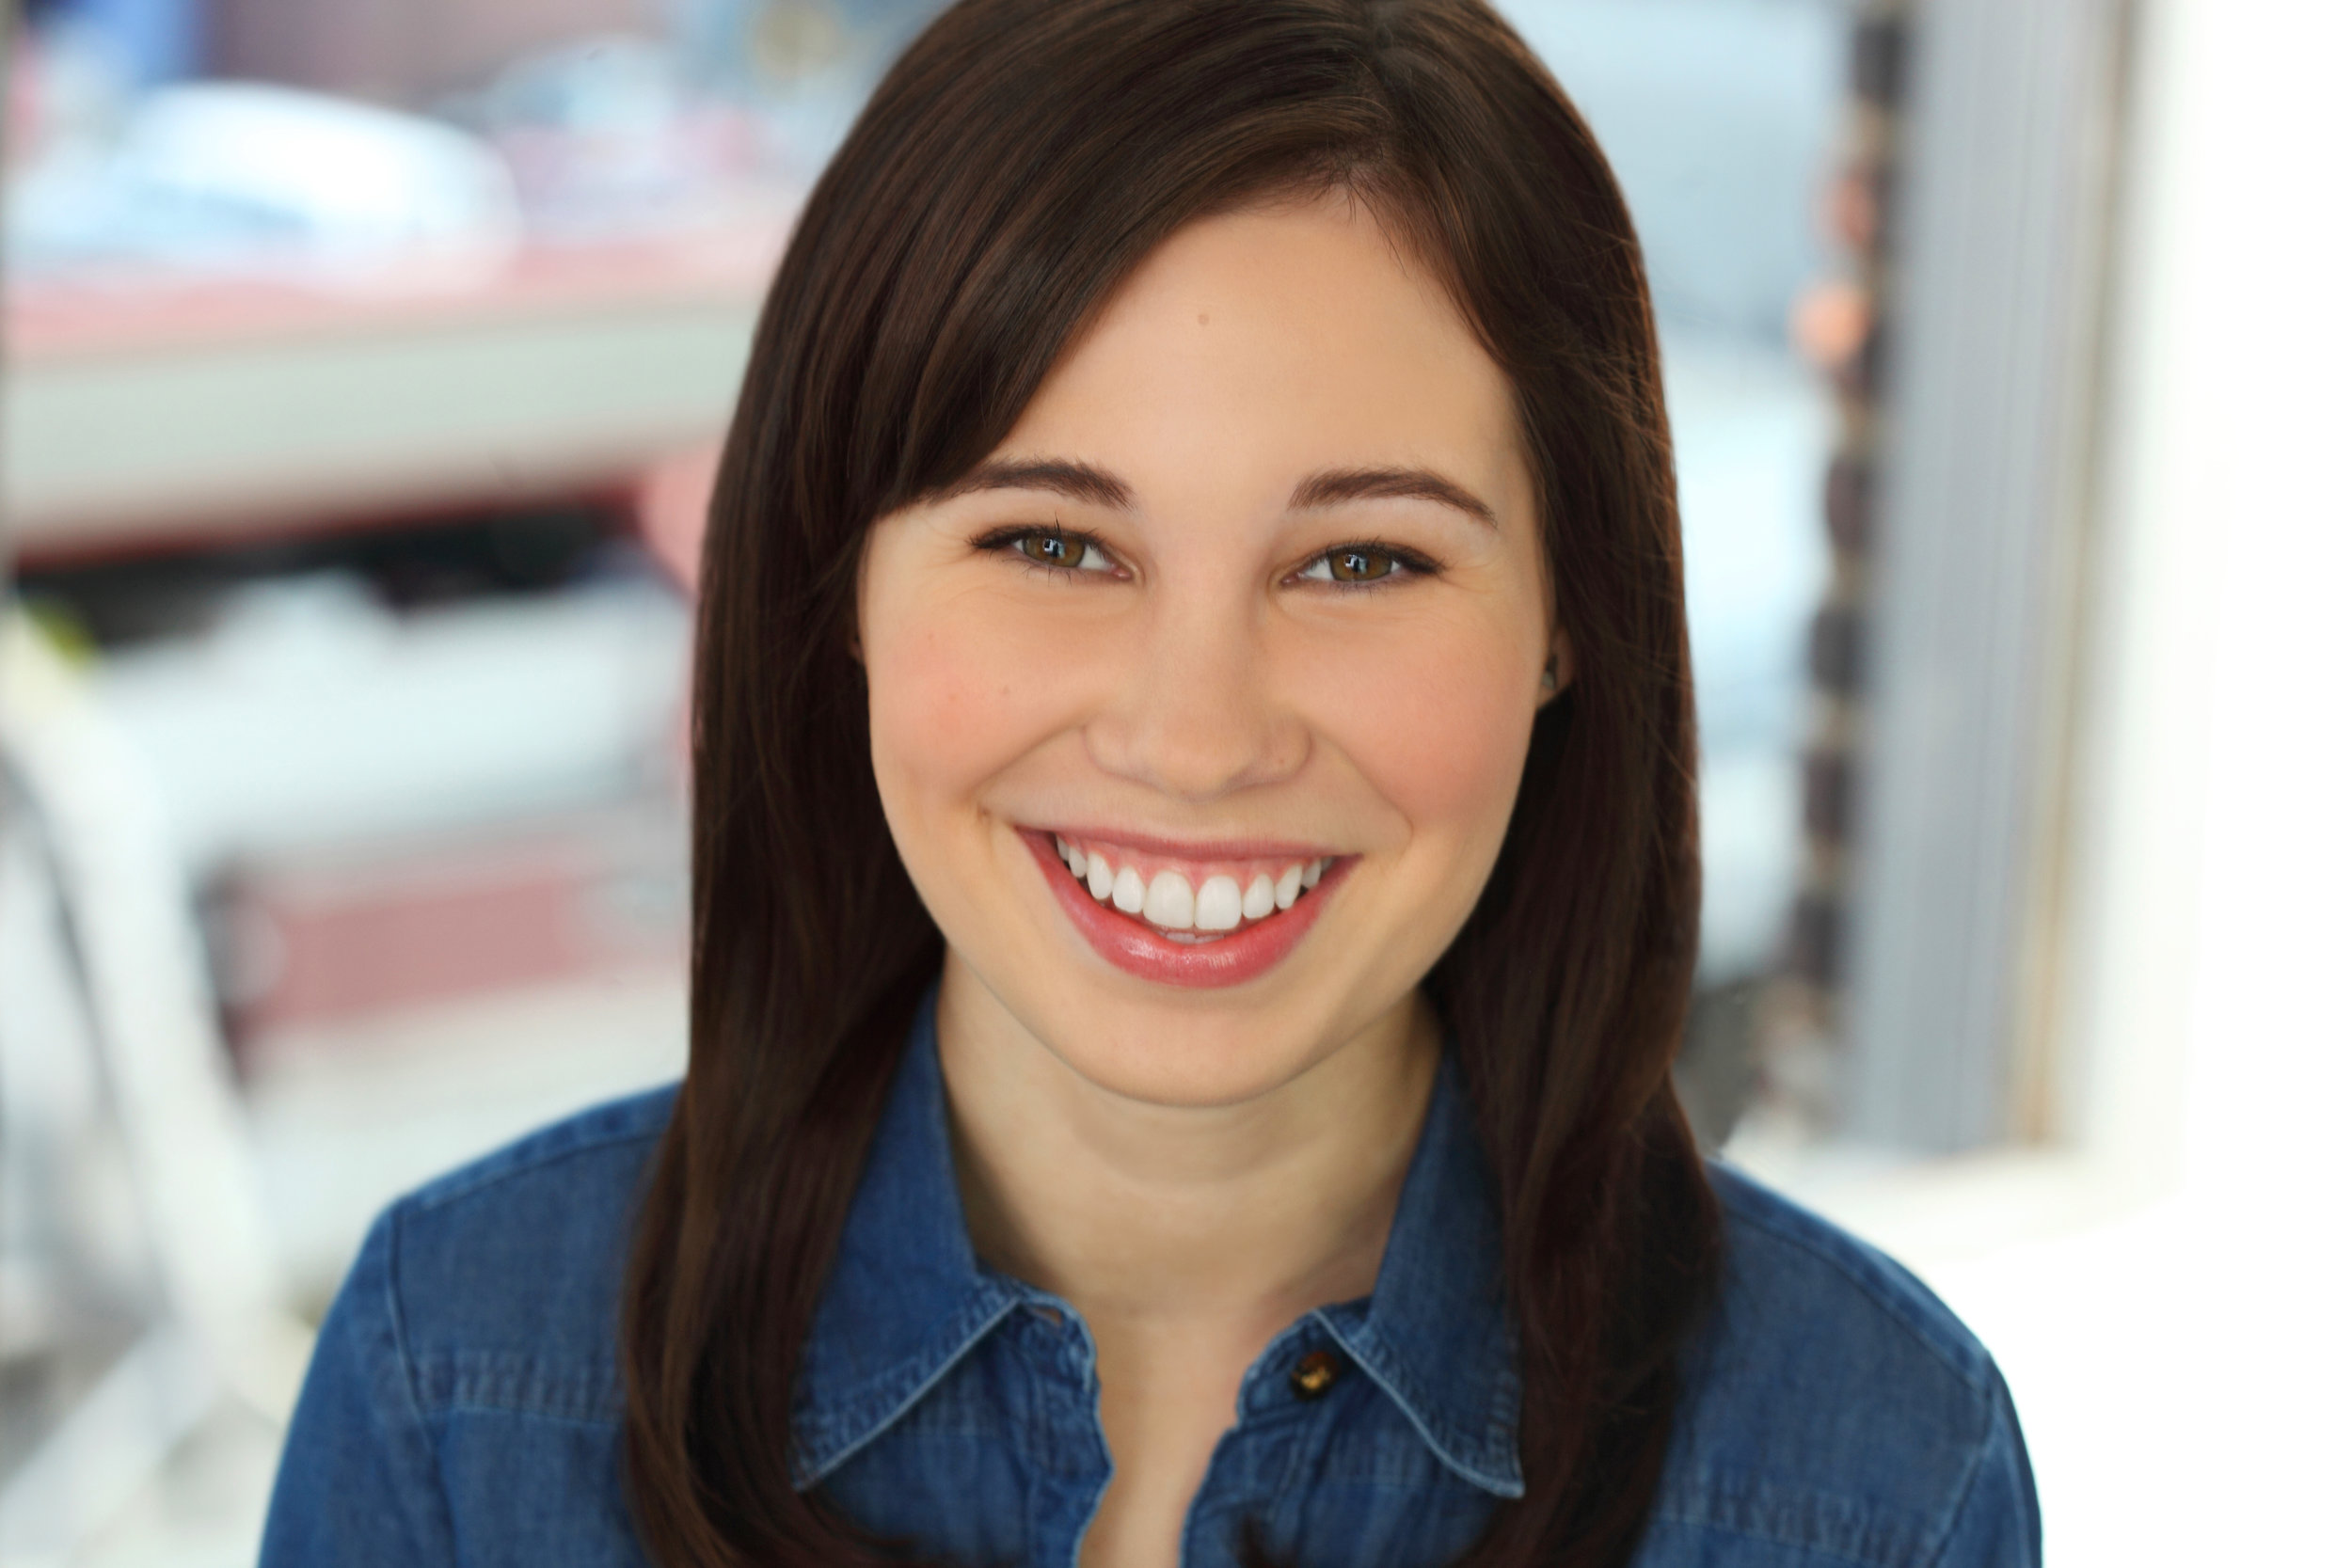 Melissa Maney (Community Sponsorship/Program) is a graduate from The New School for Drama. She has written, directed and produced shows all over New York including, The Tank, The Barrow Group Theatre, The Player's Theatre, The Wild Project, TheatreLab, The Gene Frankel Theatre, and more.